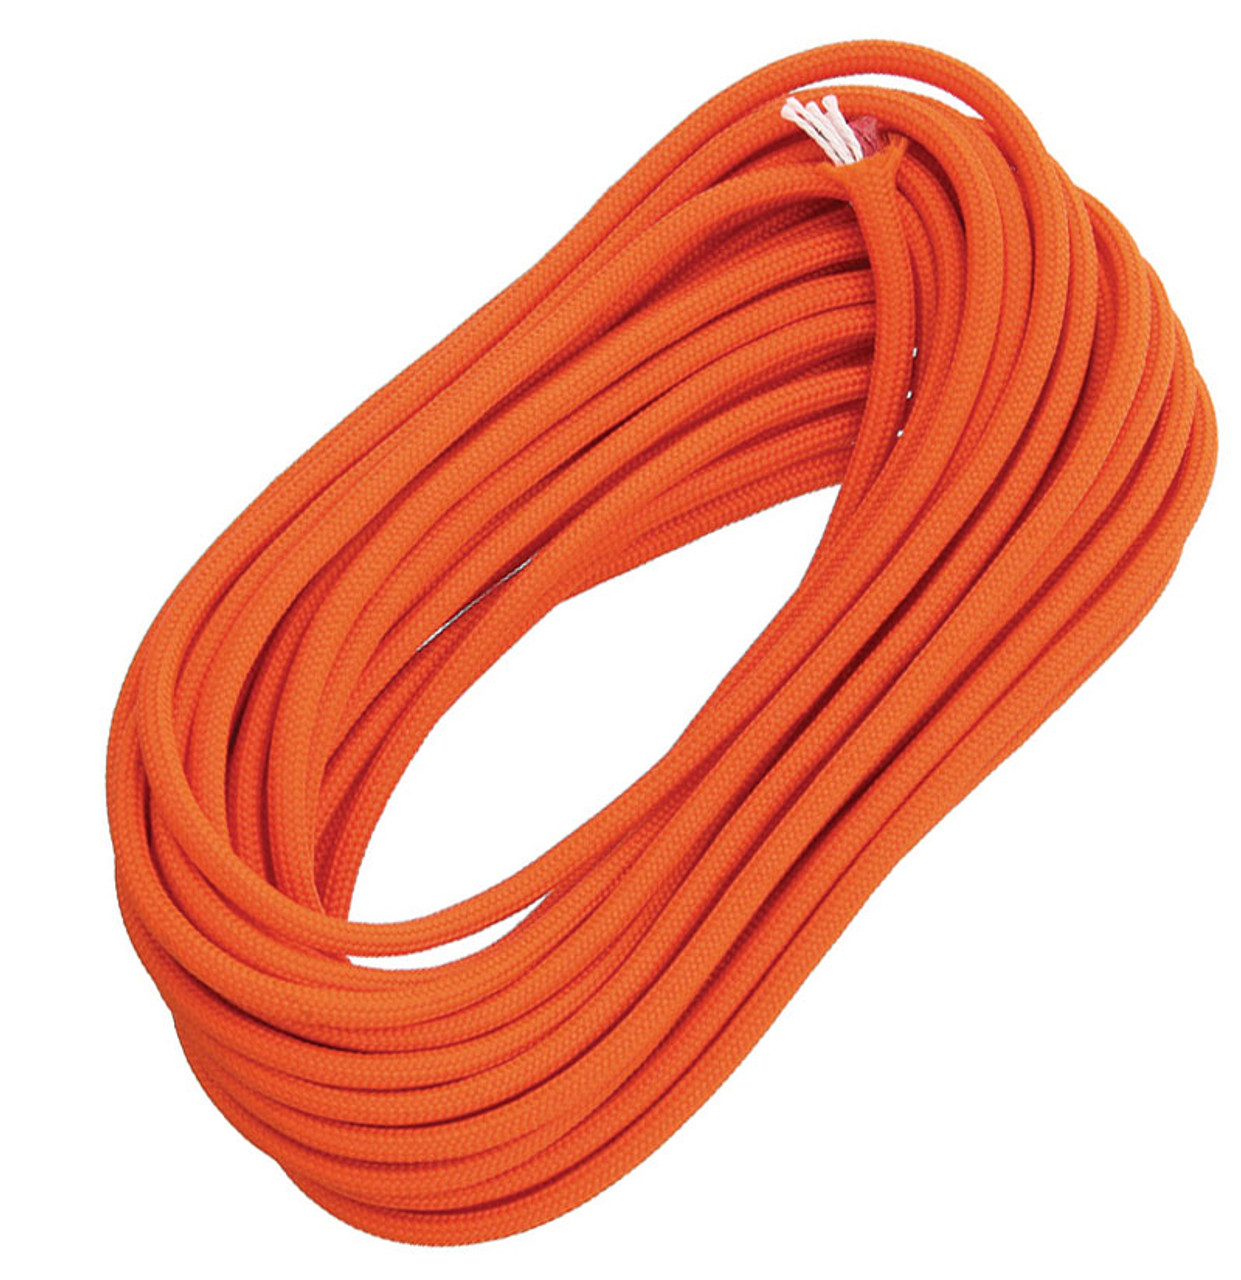 Live Fire Gear, 550 FireCord, 25 ft Safety Orange